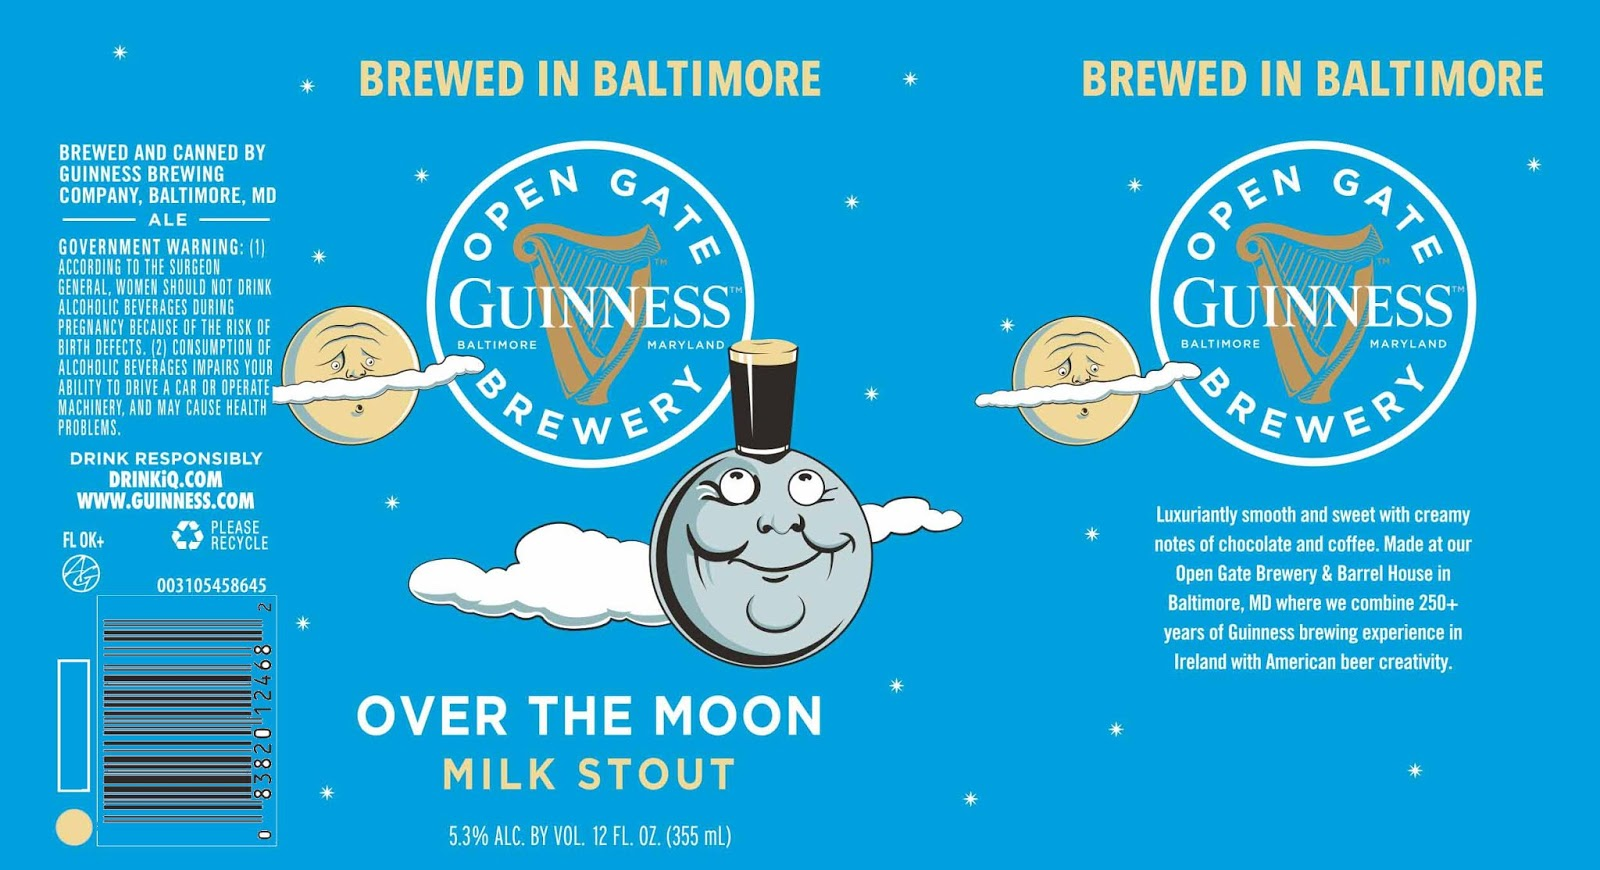 Guinness Open Gate Baltimore Adding Over The Moon Milk Stout